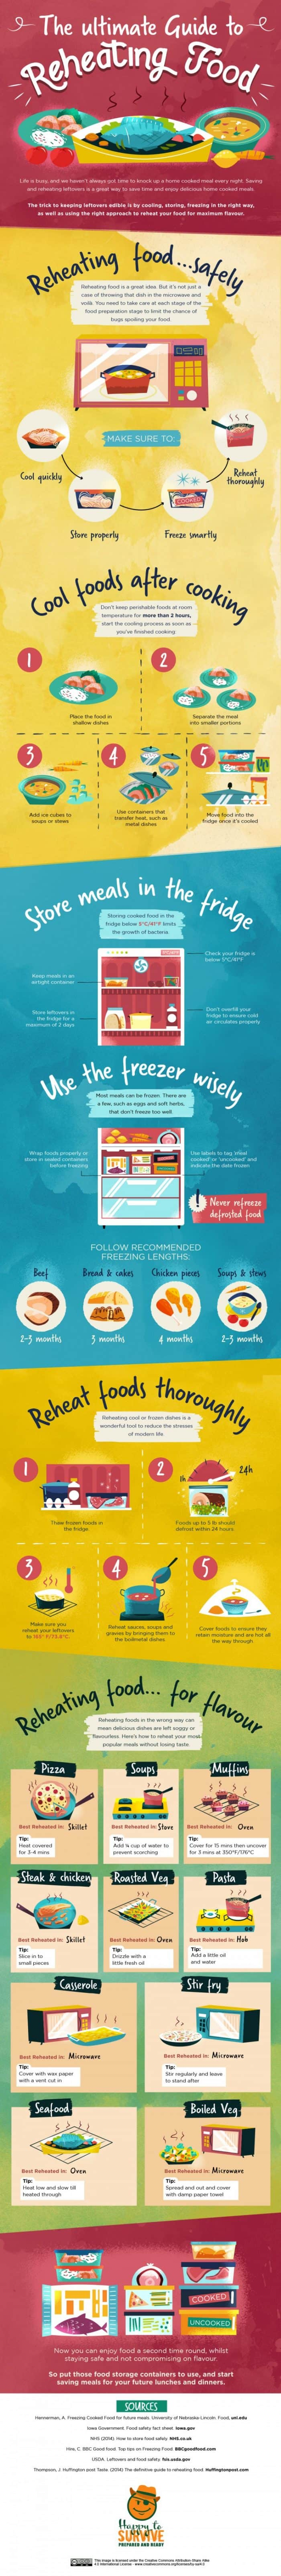 Ultimate Guide to Reheating Food Infographic